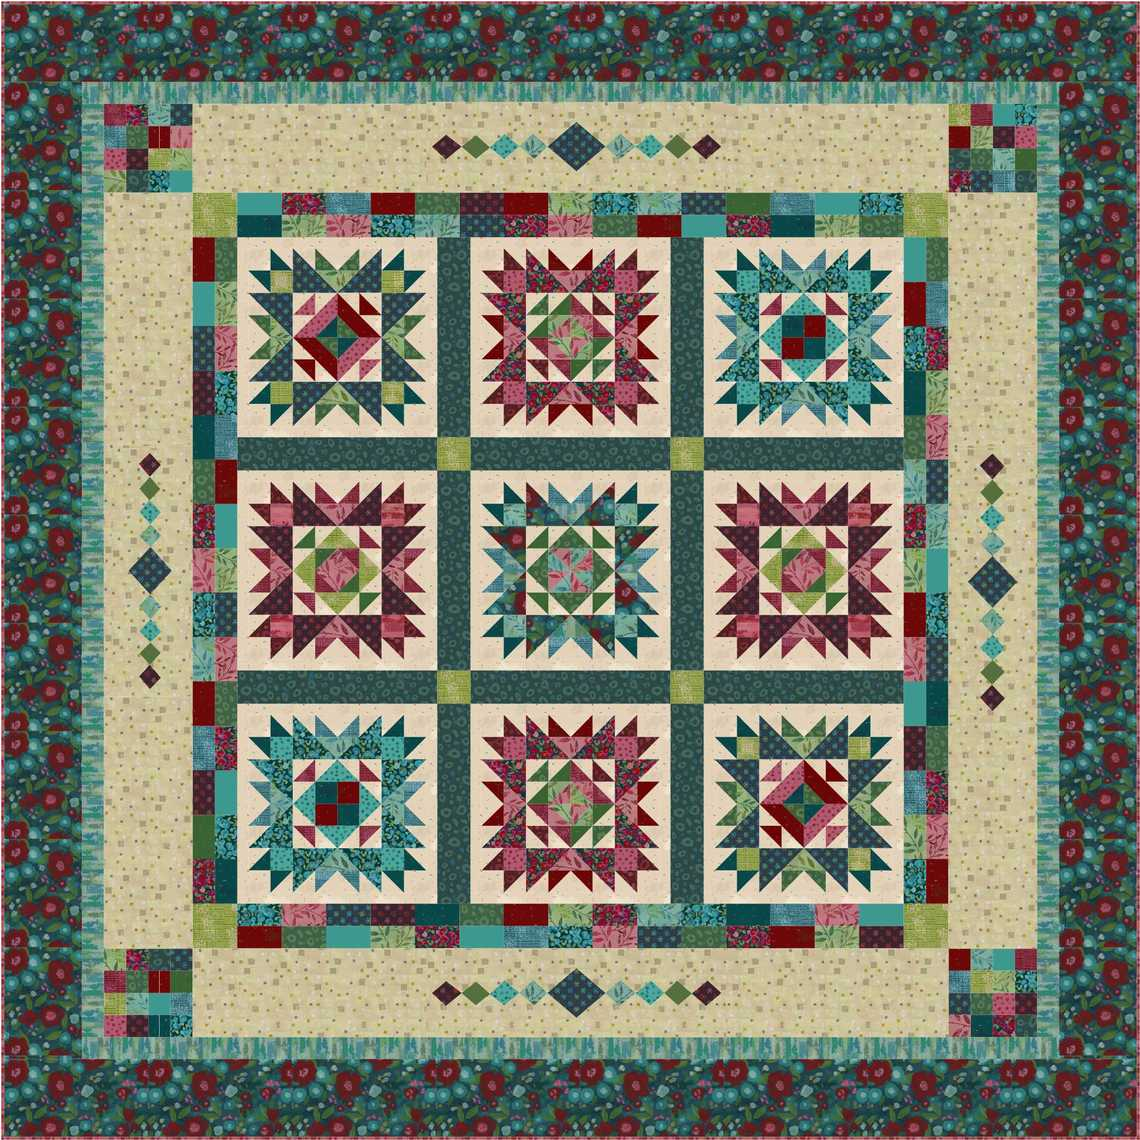 Painters Garden Pieced Quilt Image